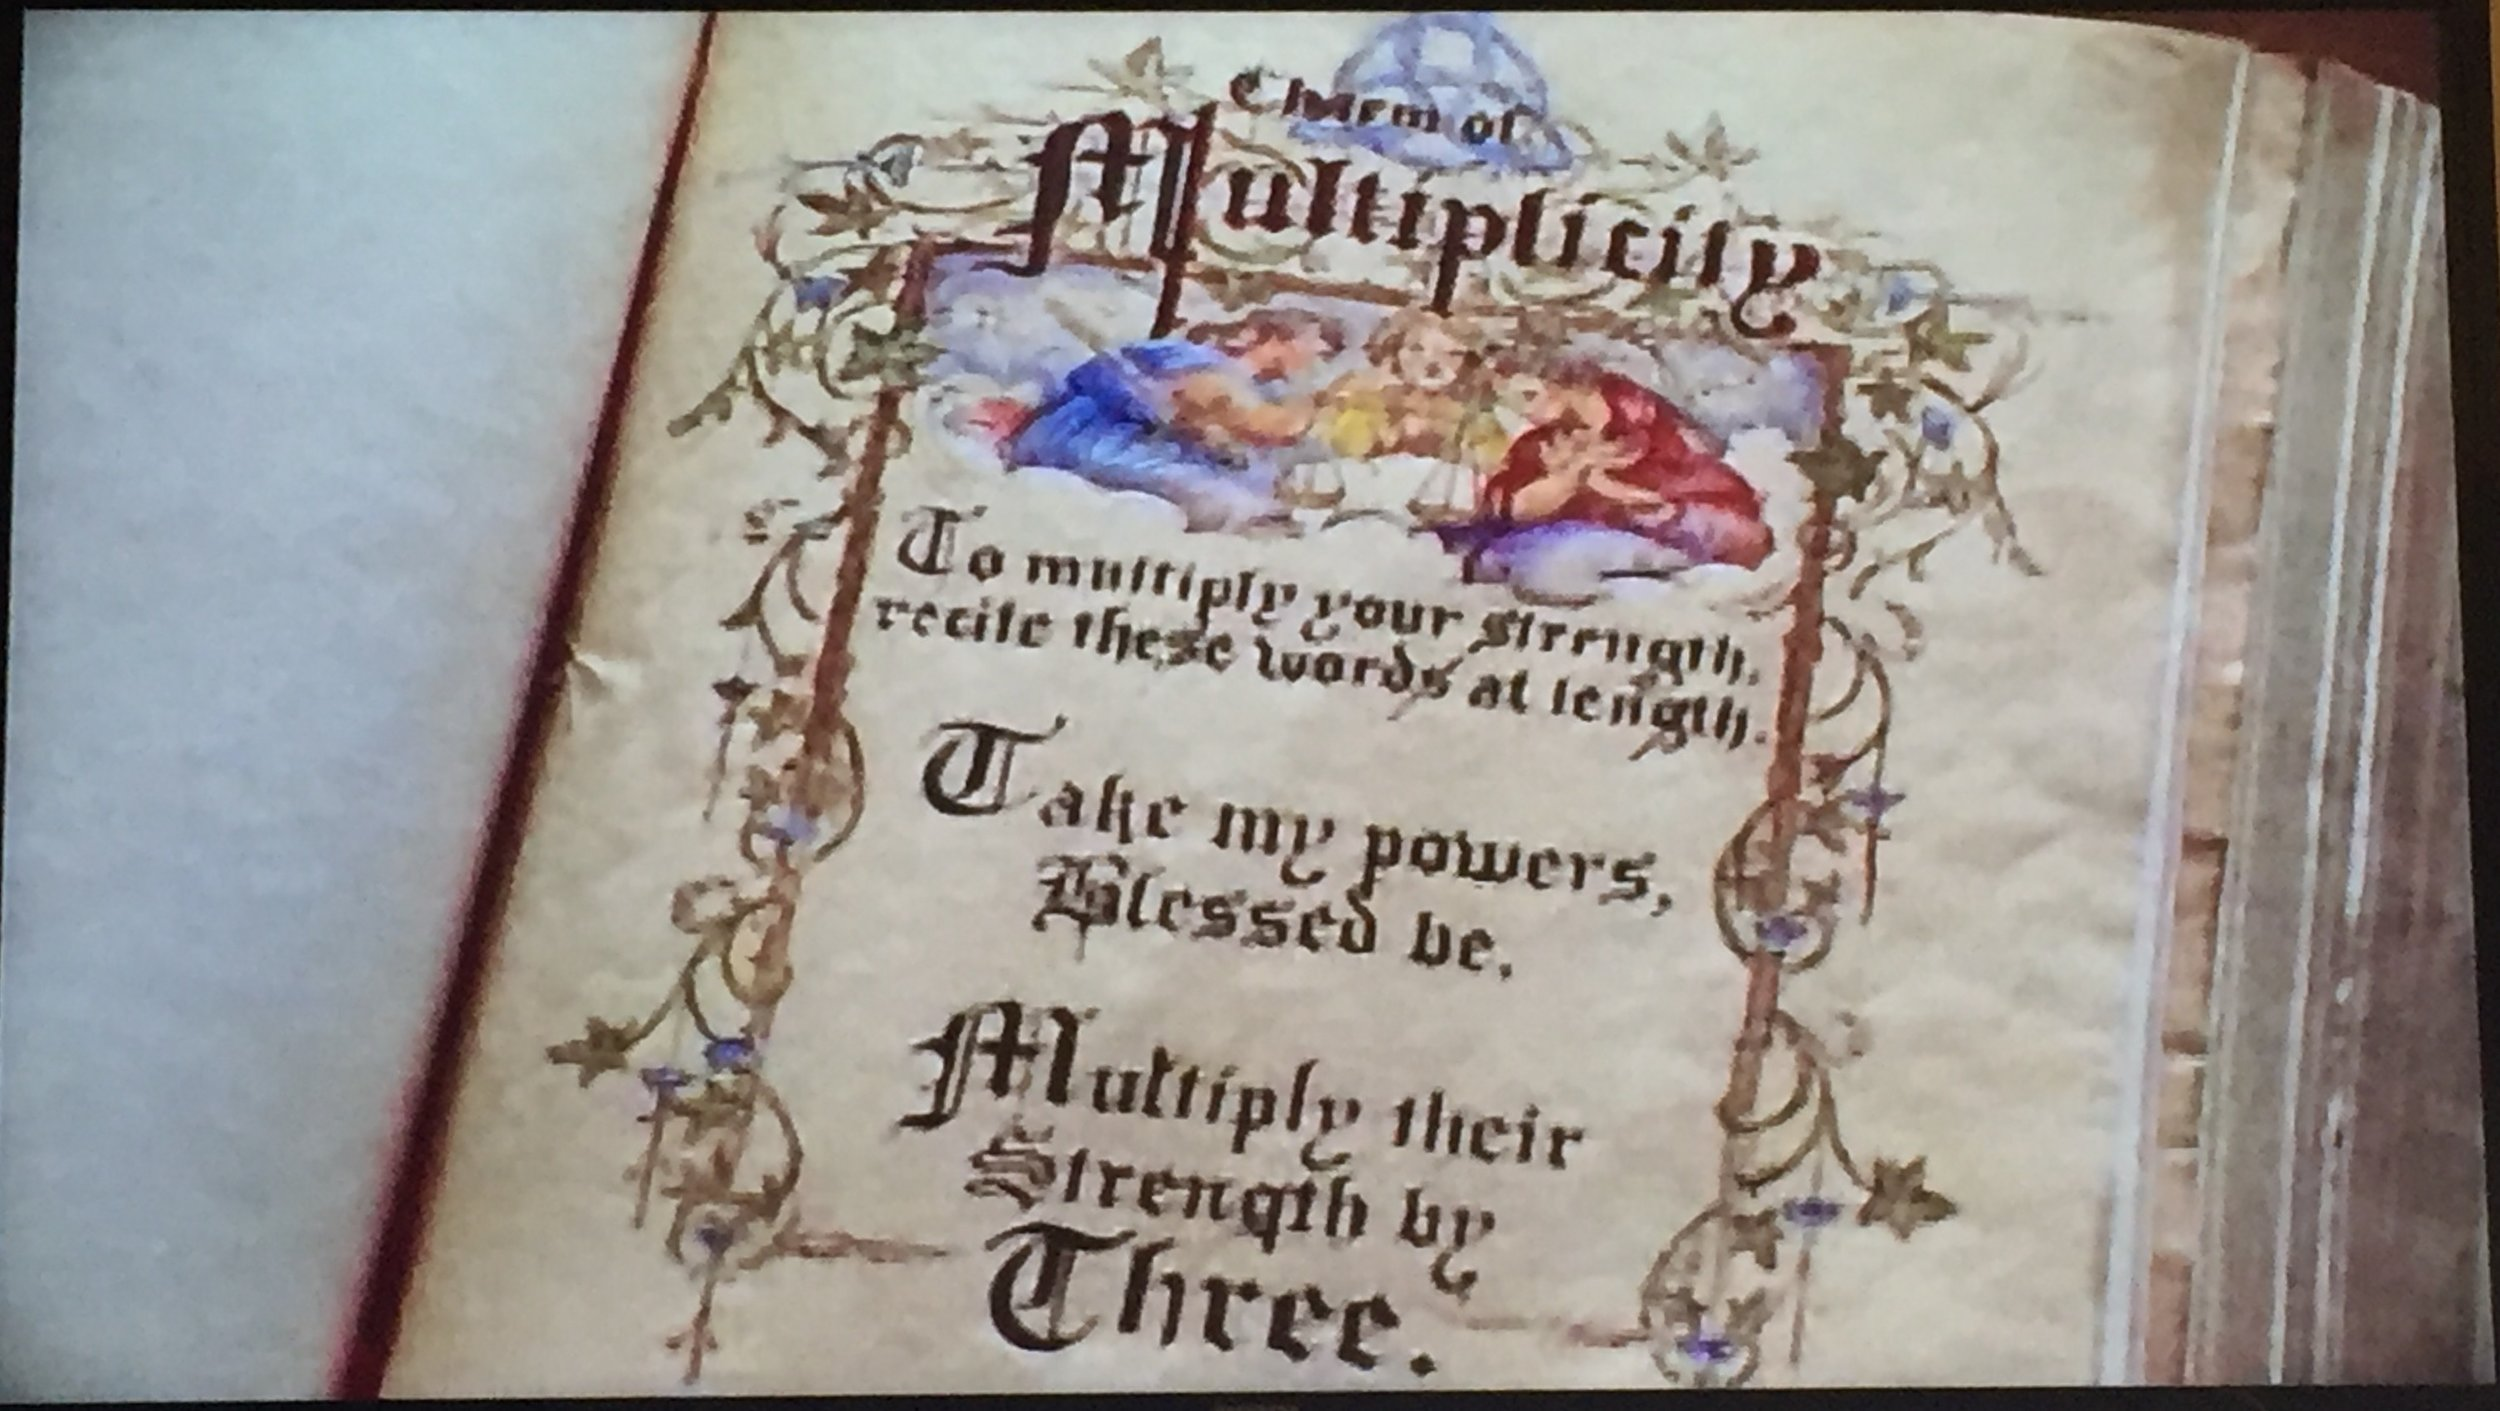 The spell Prue read to multiply! Maybe, if she had read the title of the spell, she'd have known what it would do...